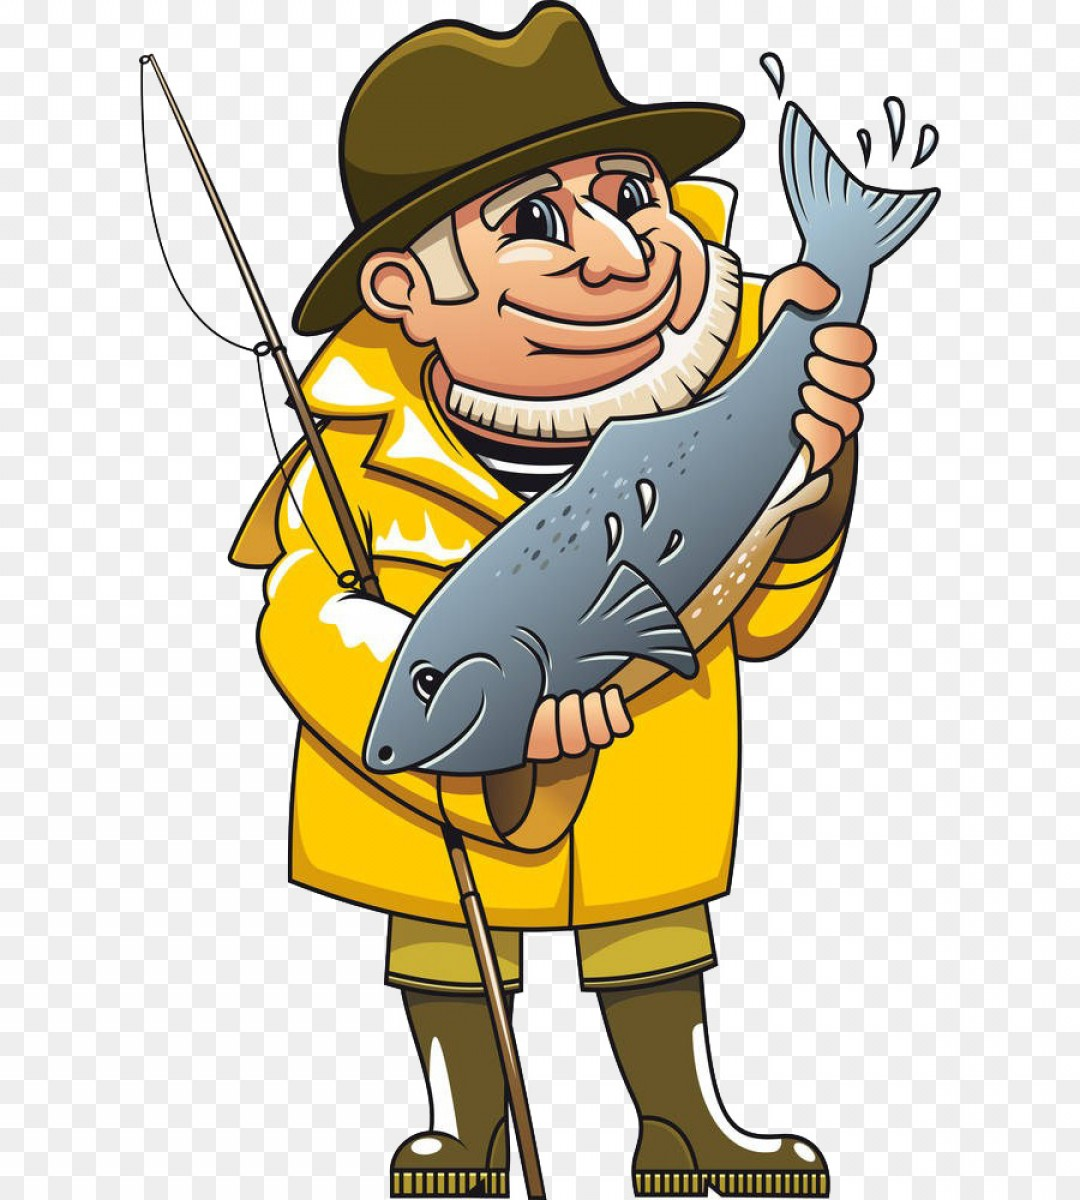 Png Fisherman Royalty Free Fishing Clip Art Fishing Ol.